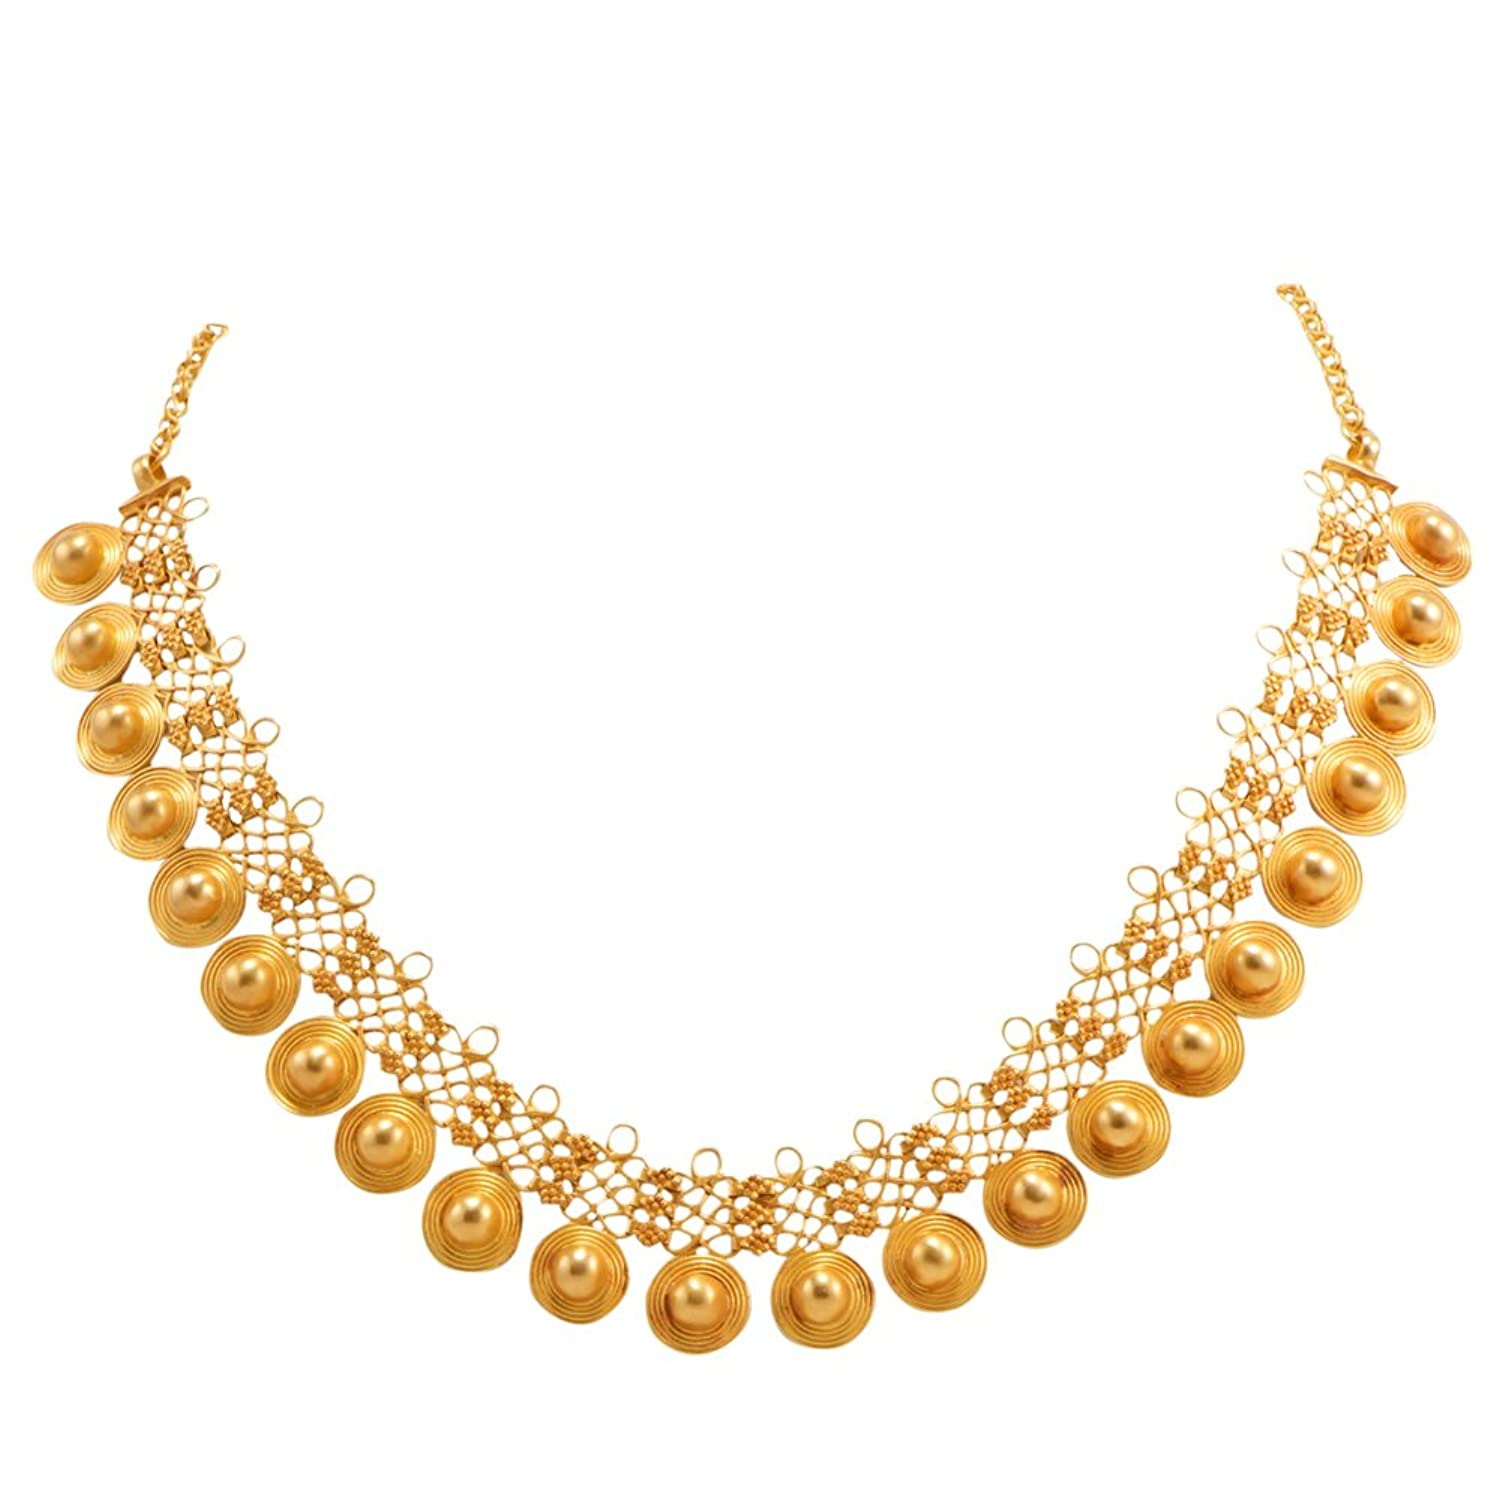 necklace best gold top light designs price india with rupees in weight